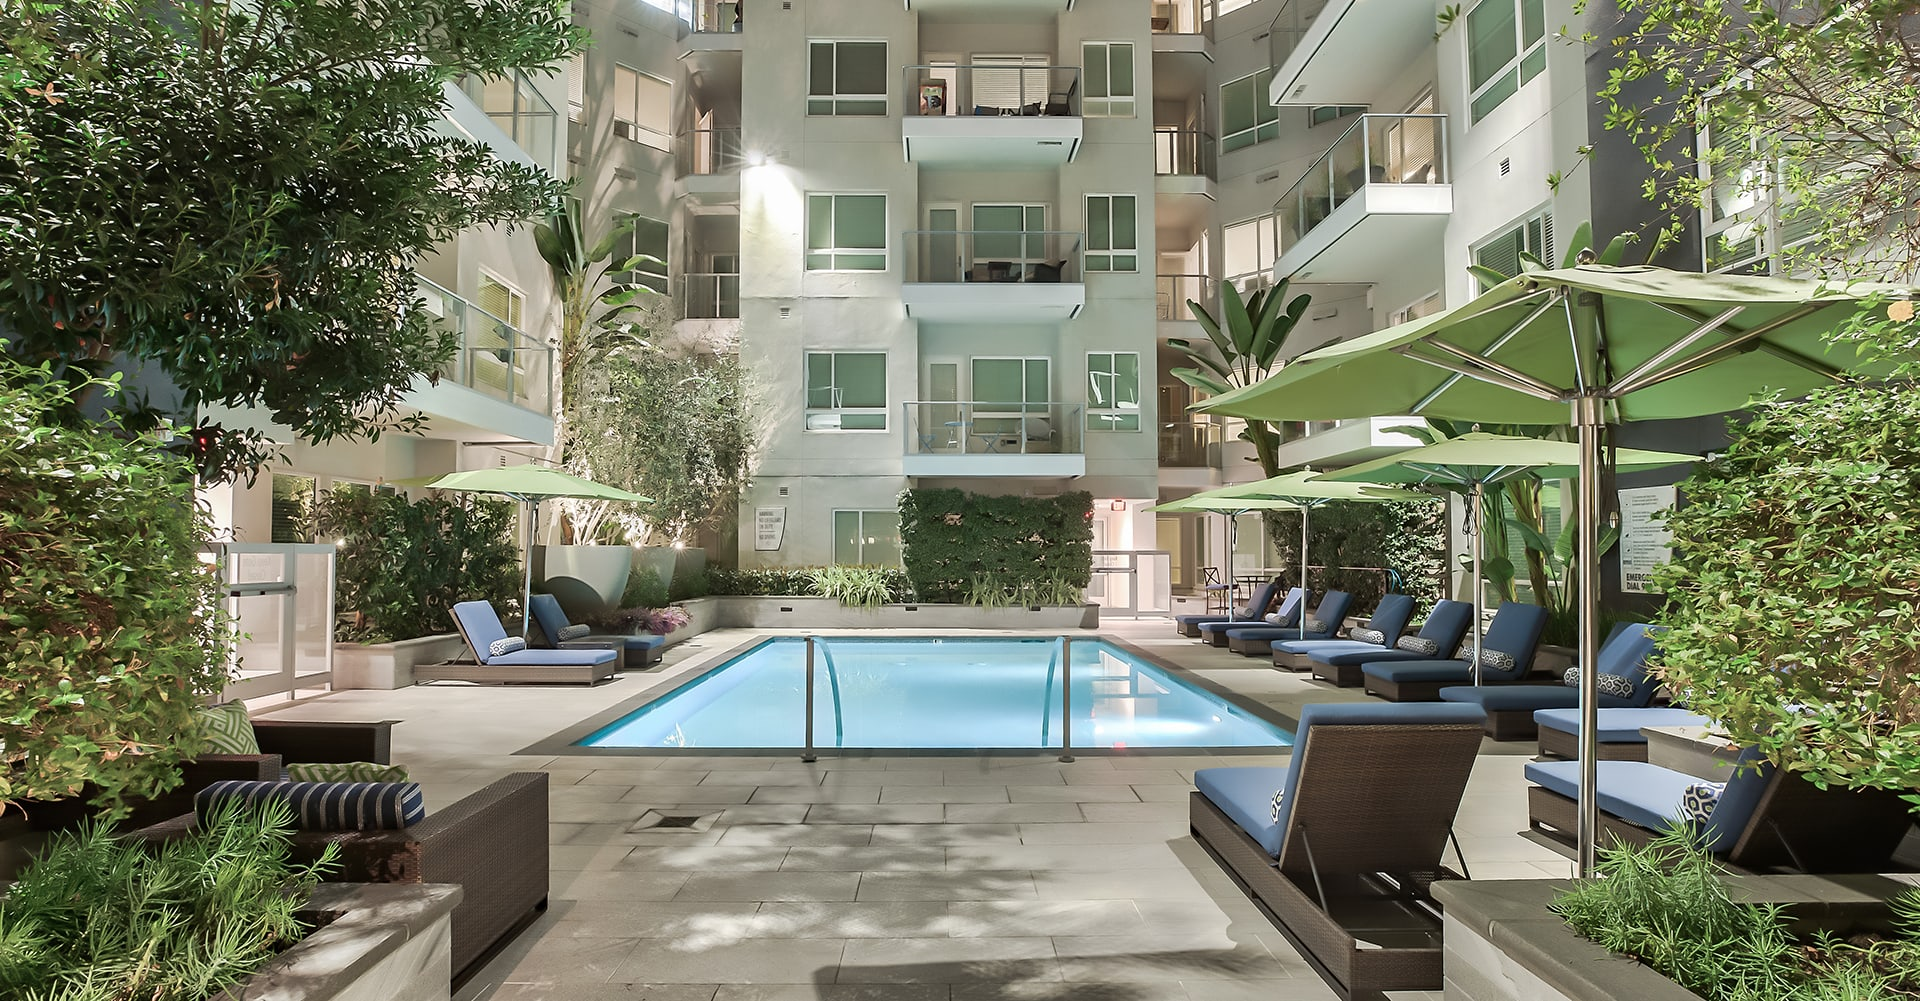 Pool, sundeck and lounge chairs at Olympic by Windsor, 936 S. Olive St, 90015